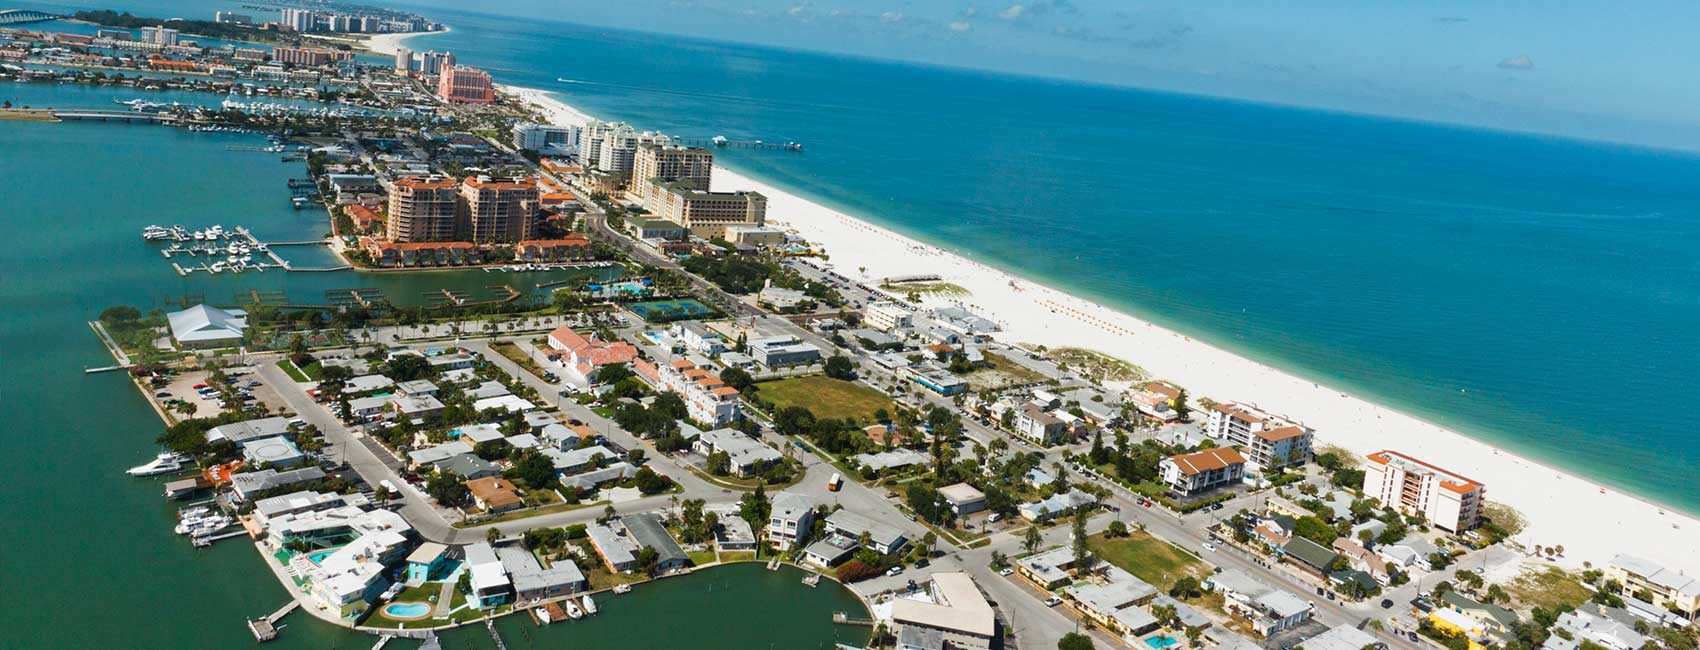 Things To Do in Clearwater and St. Pete Florida